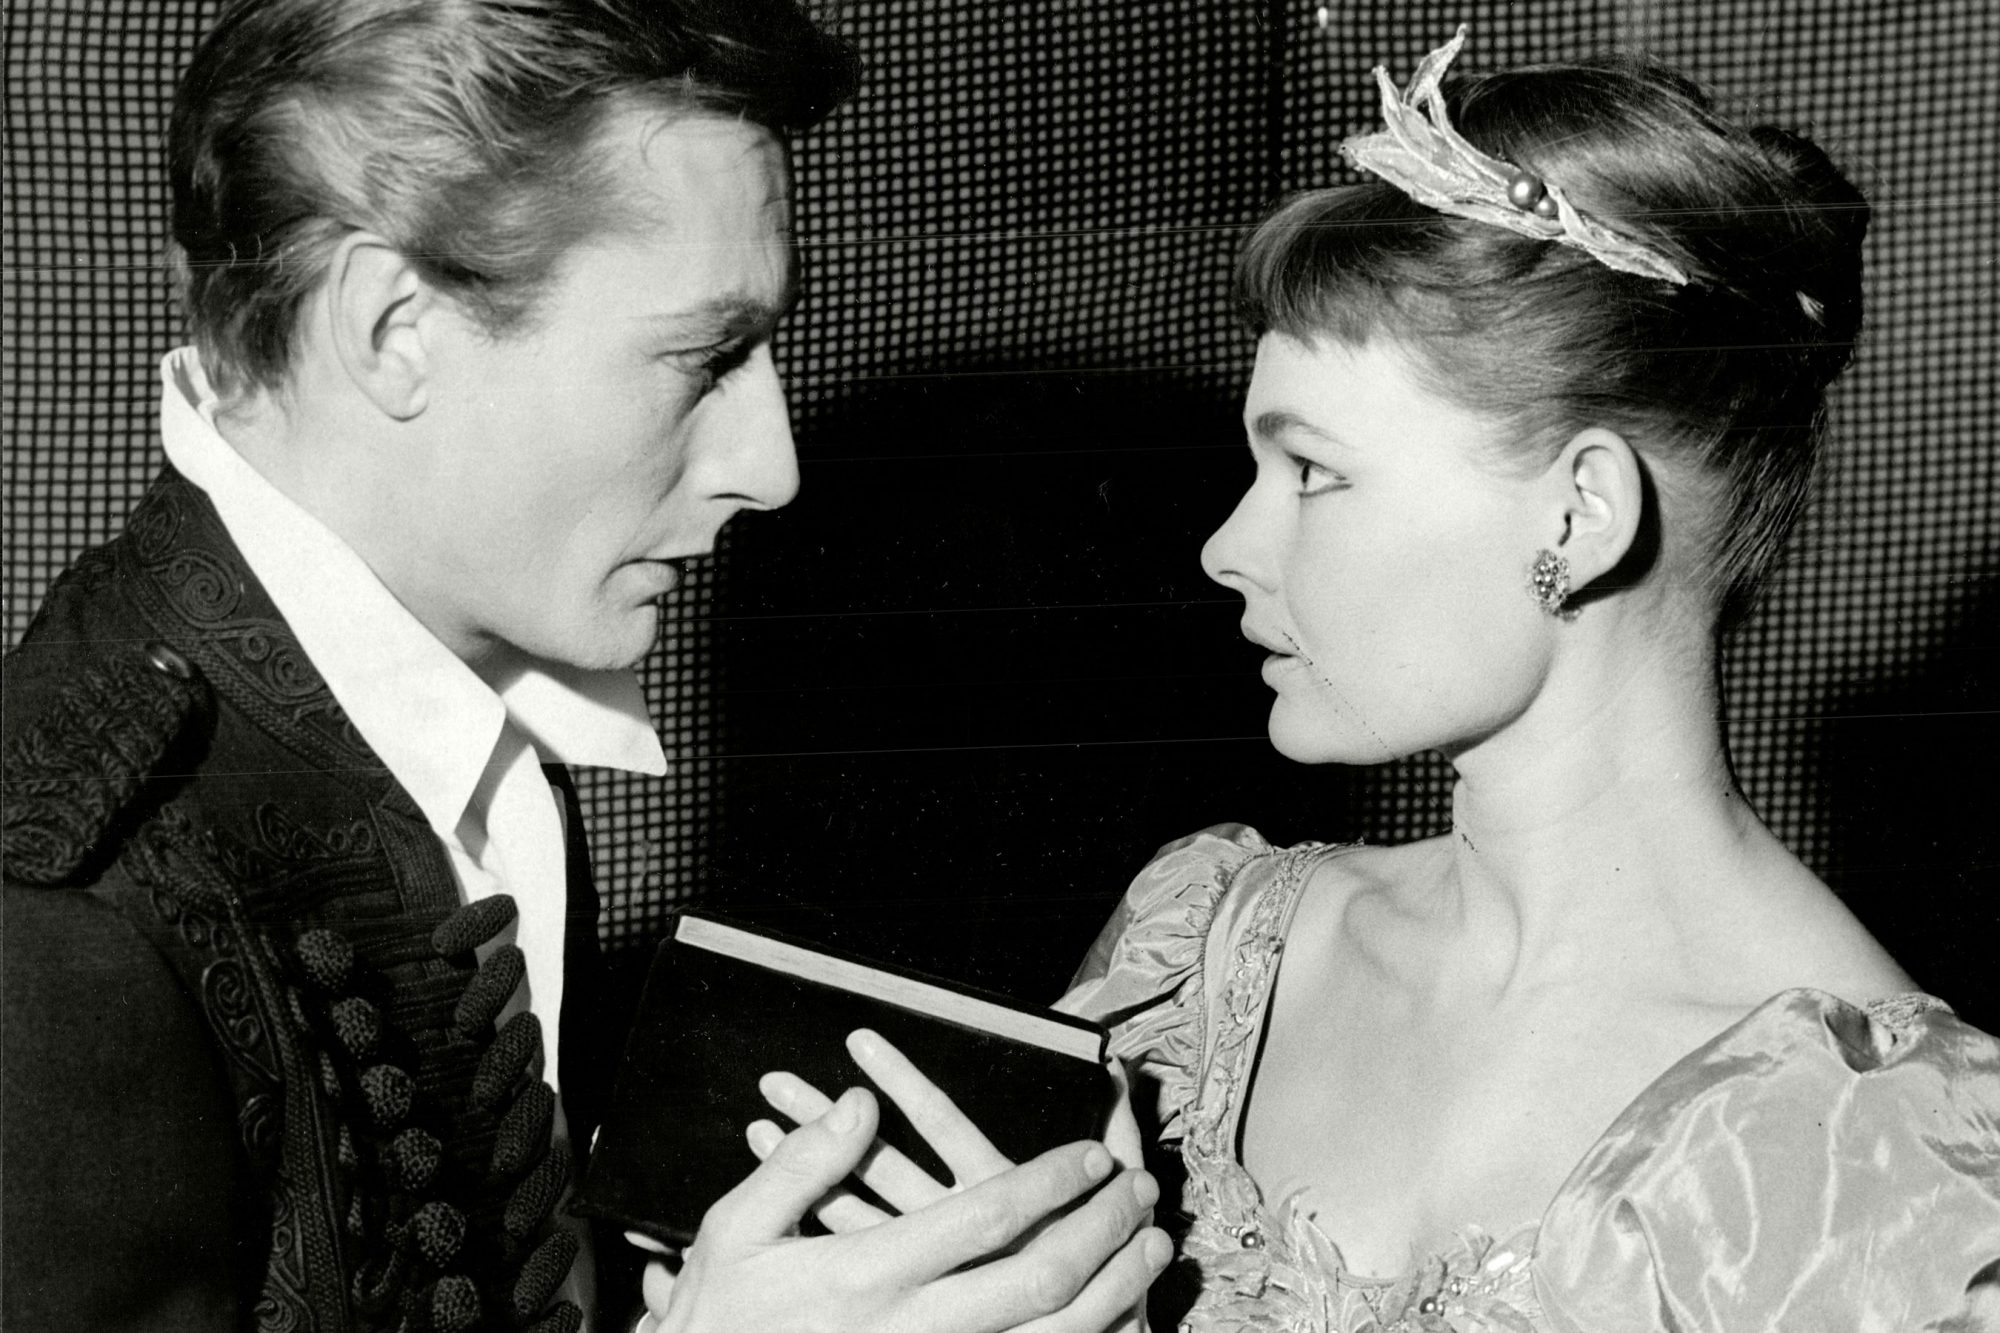 John Neville As Hamlet And Judi Dench As Ophelia In Play 'hamlet' At The Old Vic Theatre - 1957.